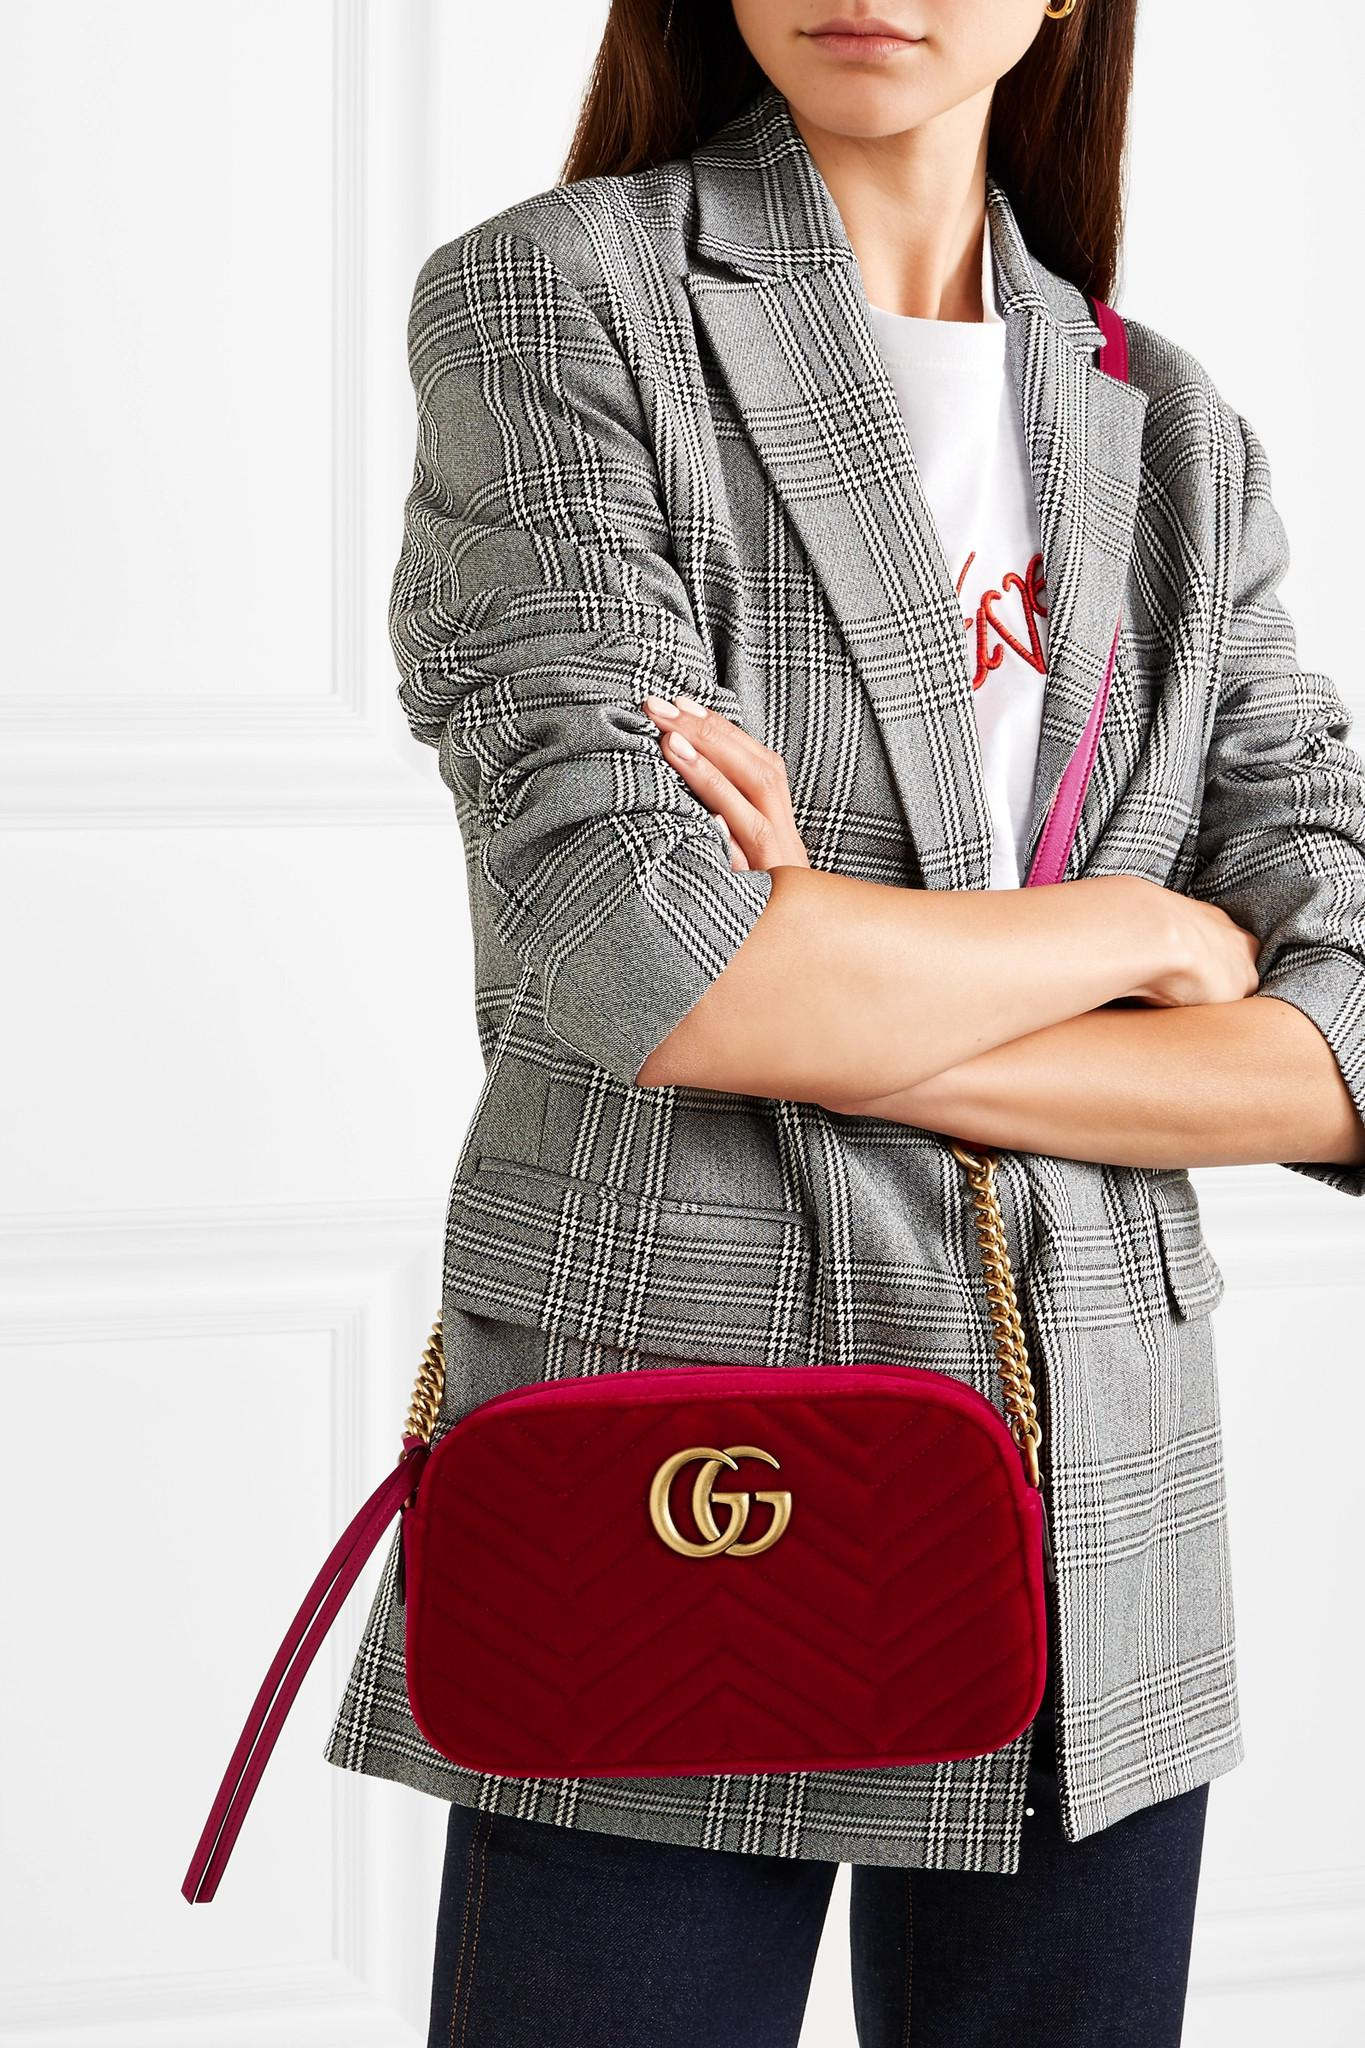 e164f78335e Gucci - Red Gg Marmont Small Quilted Velvet Shoulder Bag - Lyst. View  fullscreen